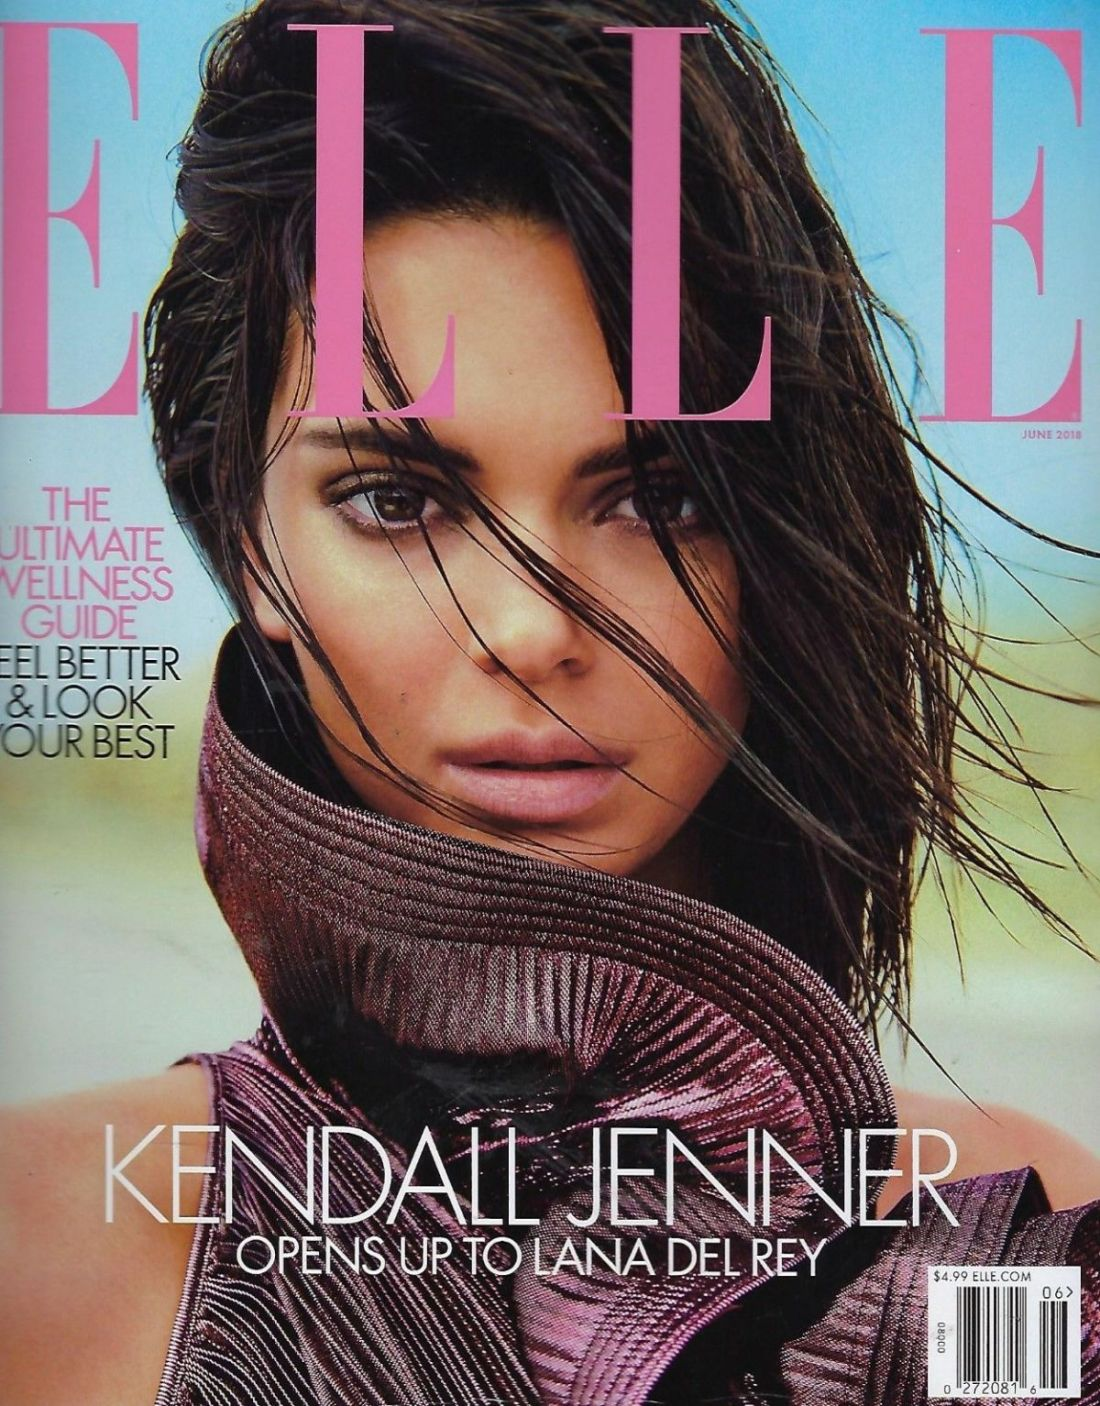 kendall-jenner-on-the-cover-of-elle-magazine-june-2018-0